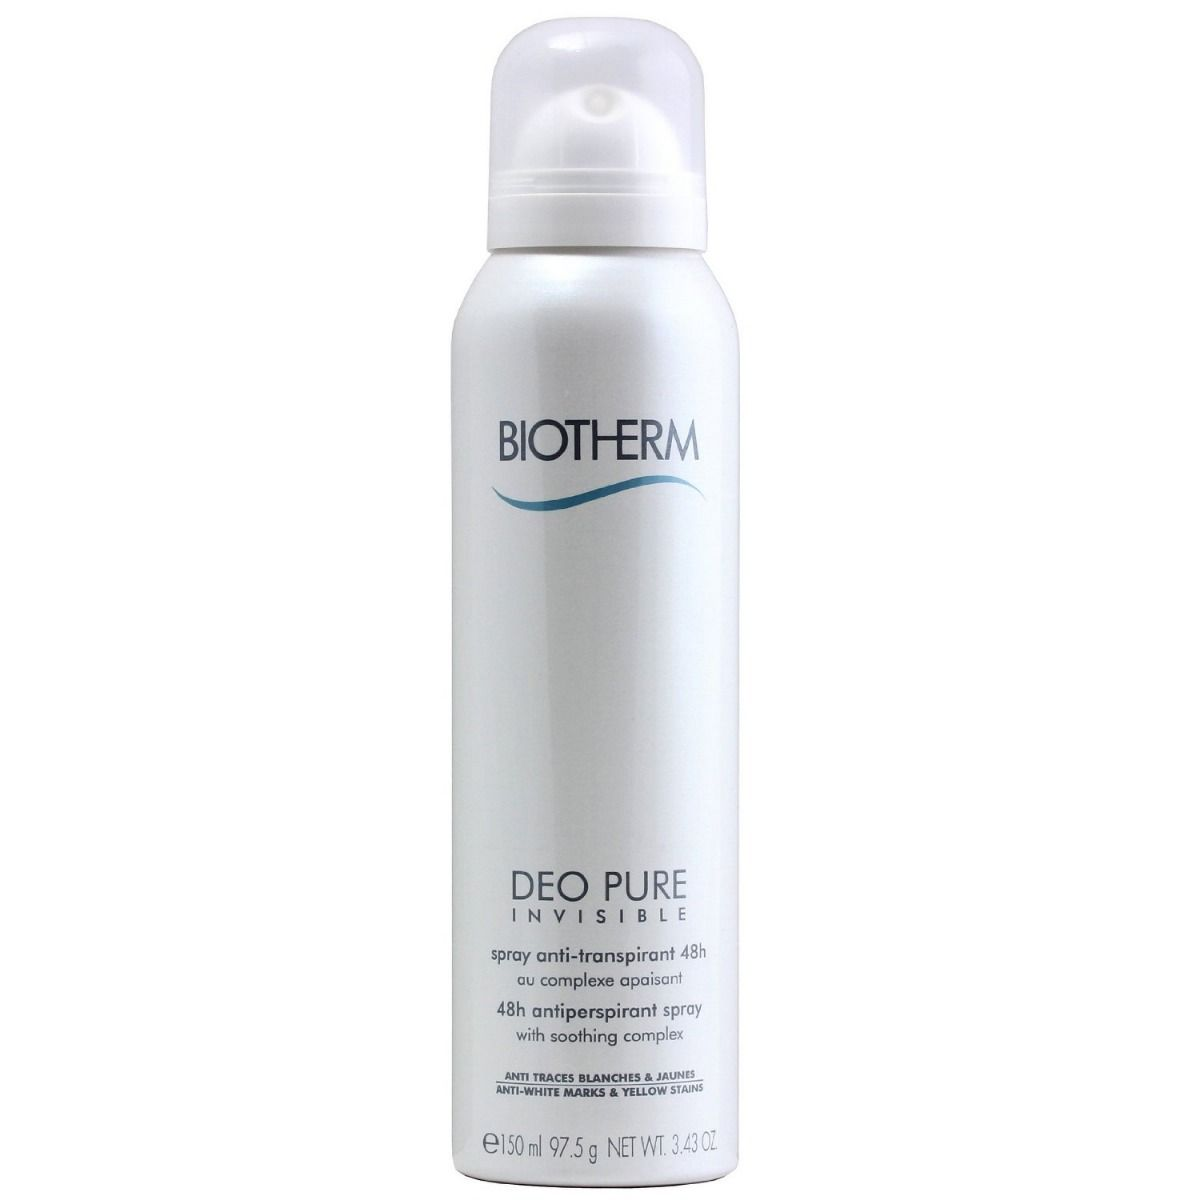 Biotherm Deo Pure Invisible Deo Spray 150ml